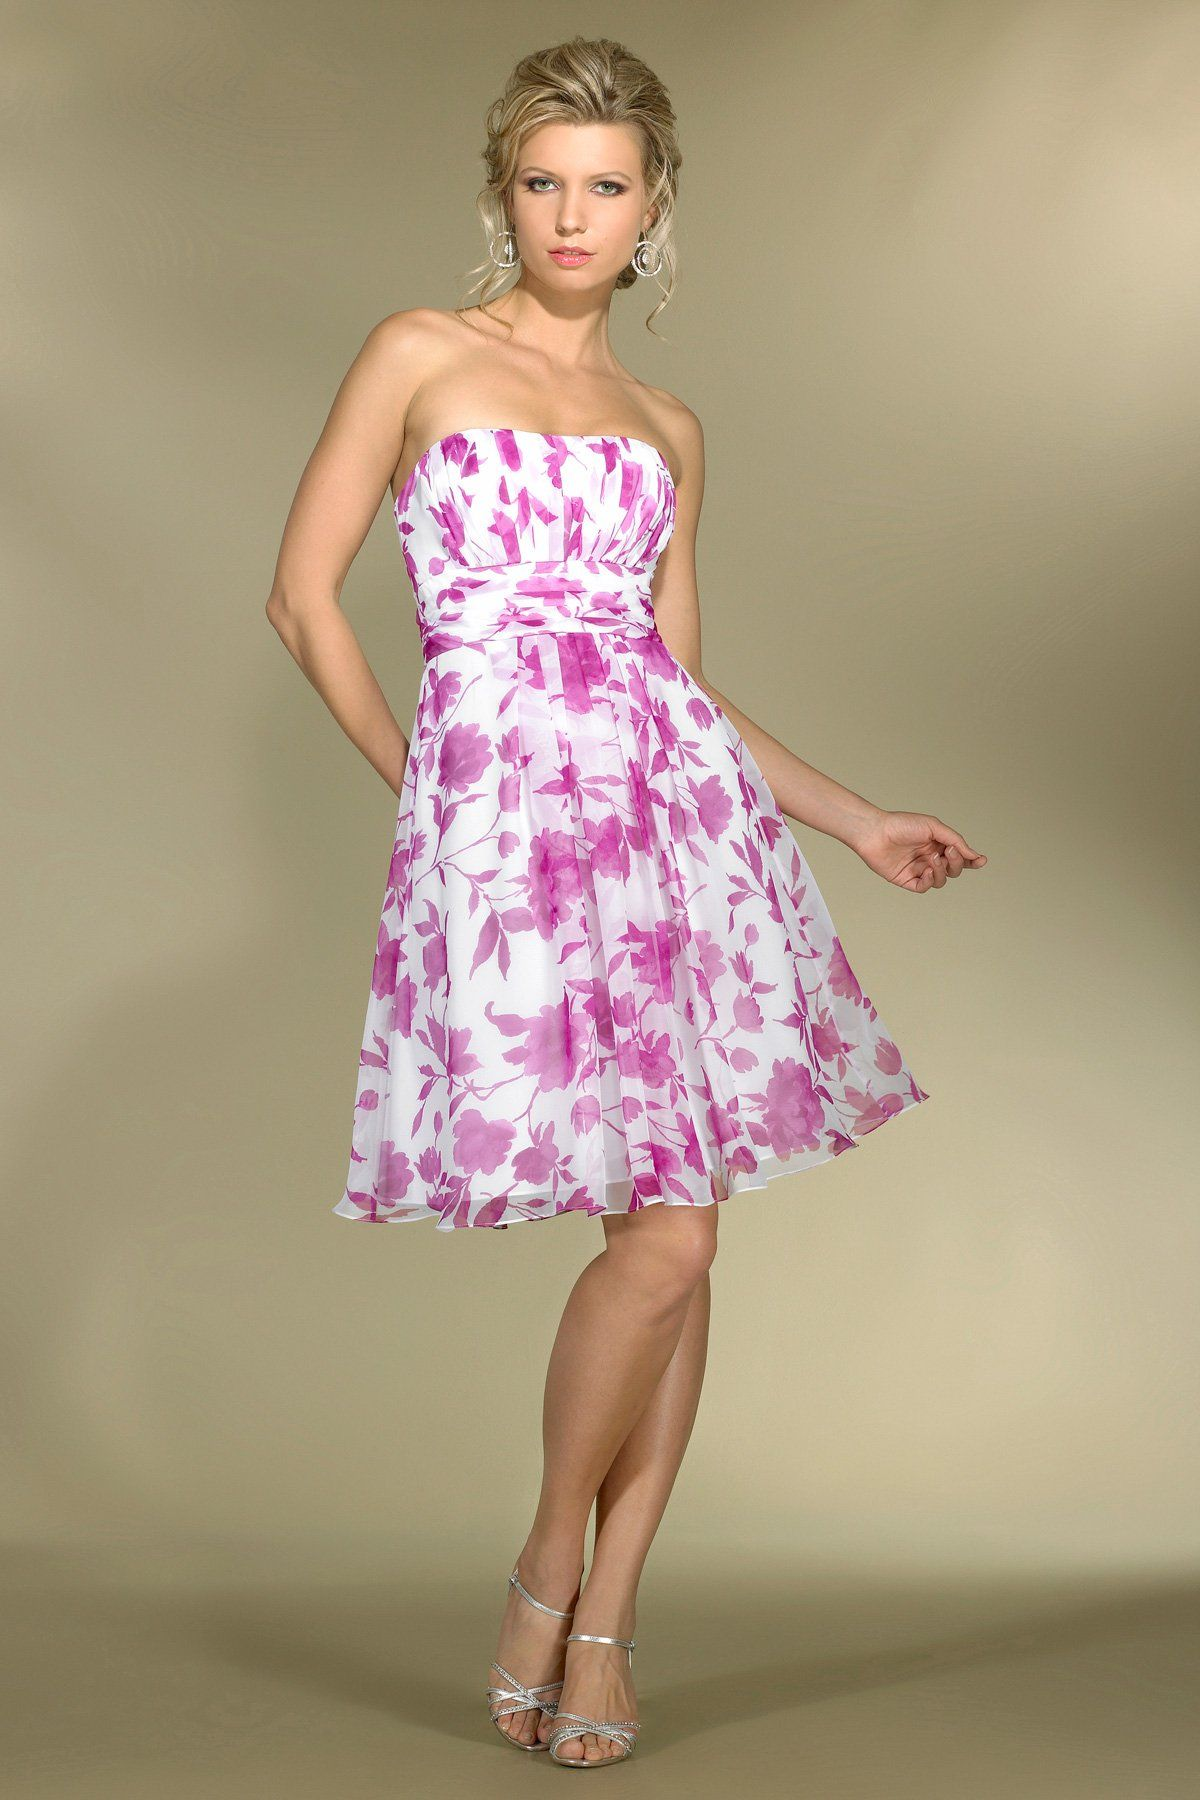 Floral print wedding dresses  This floral print chiffon dress is perfect for a summer wedding